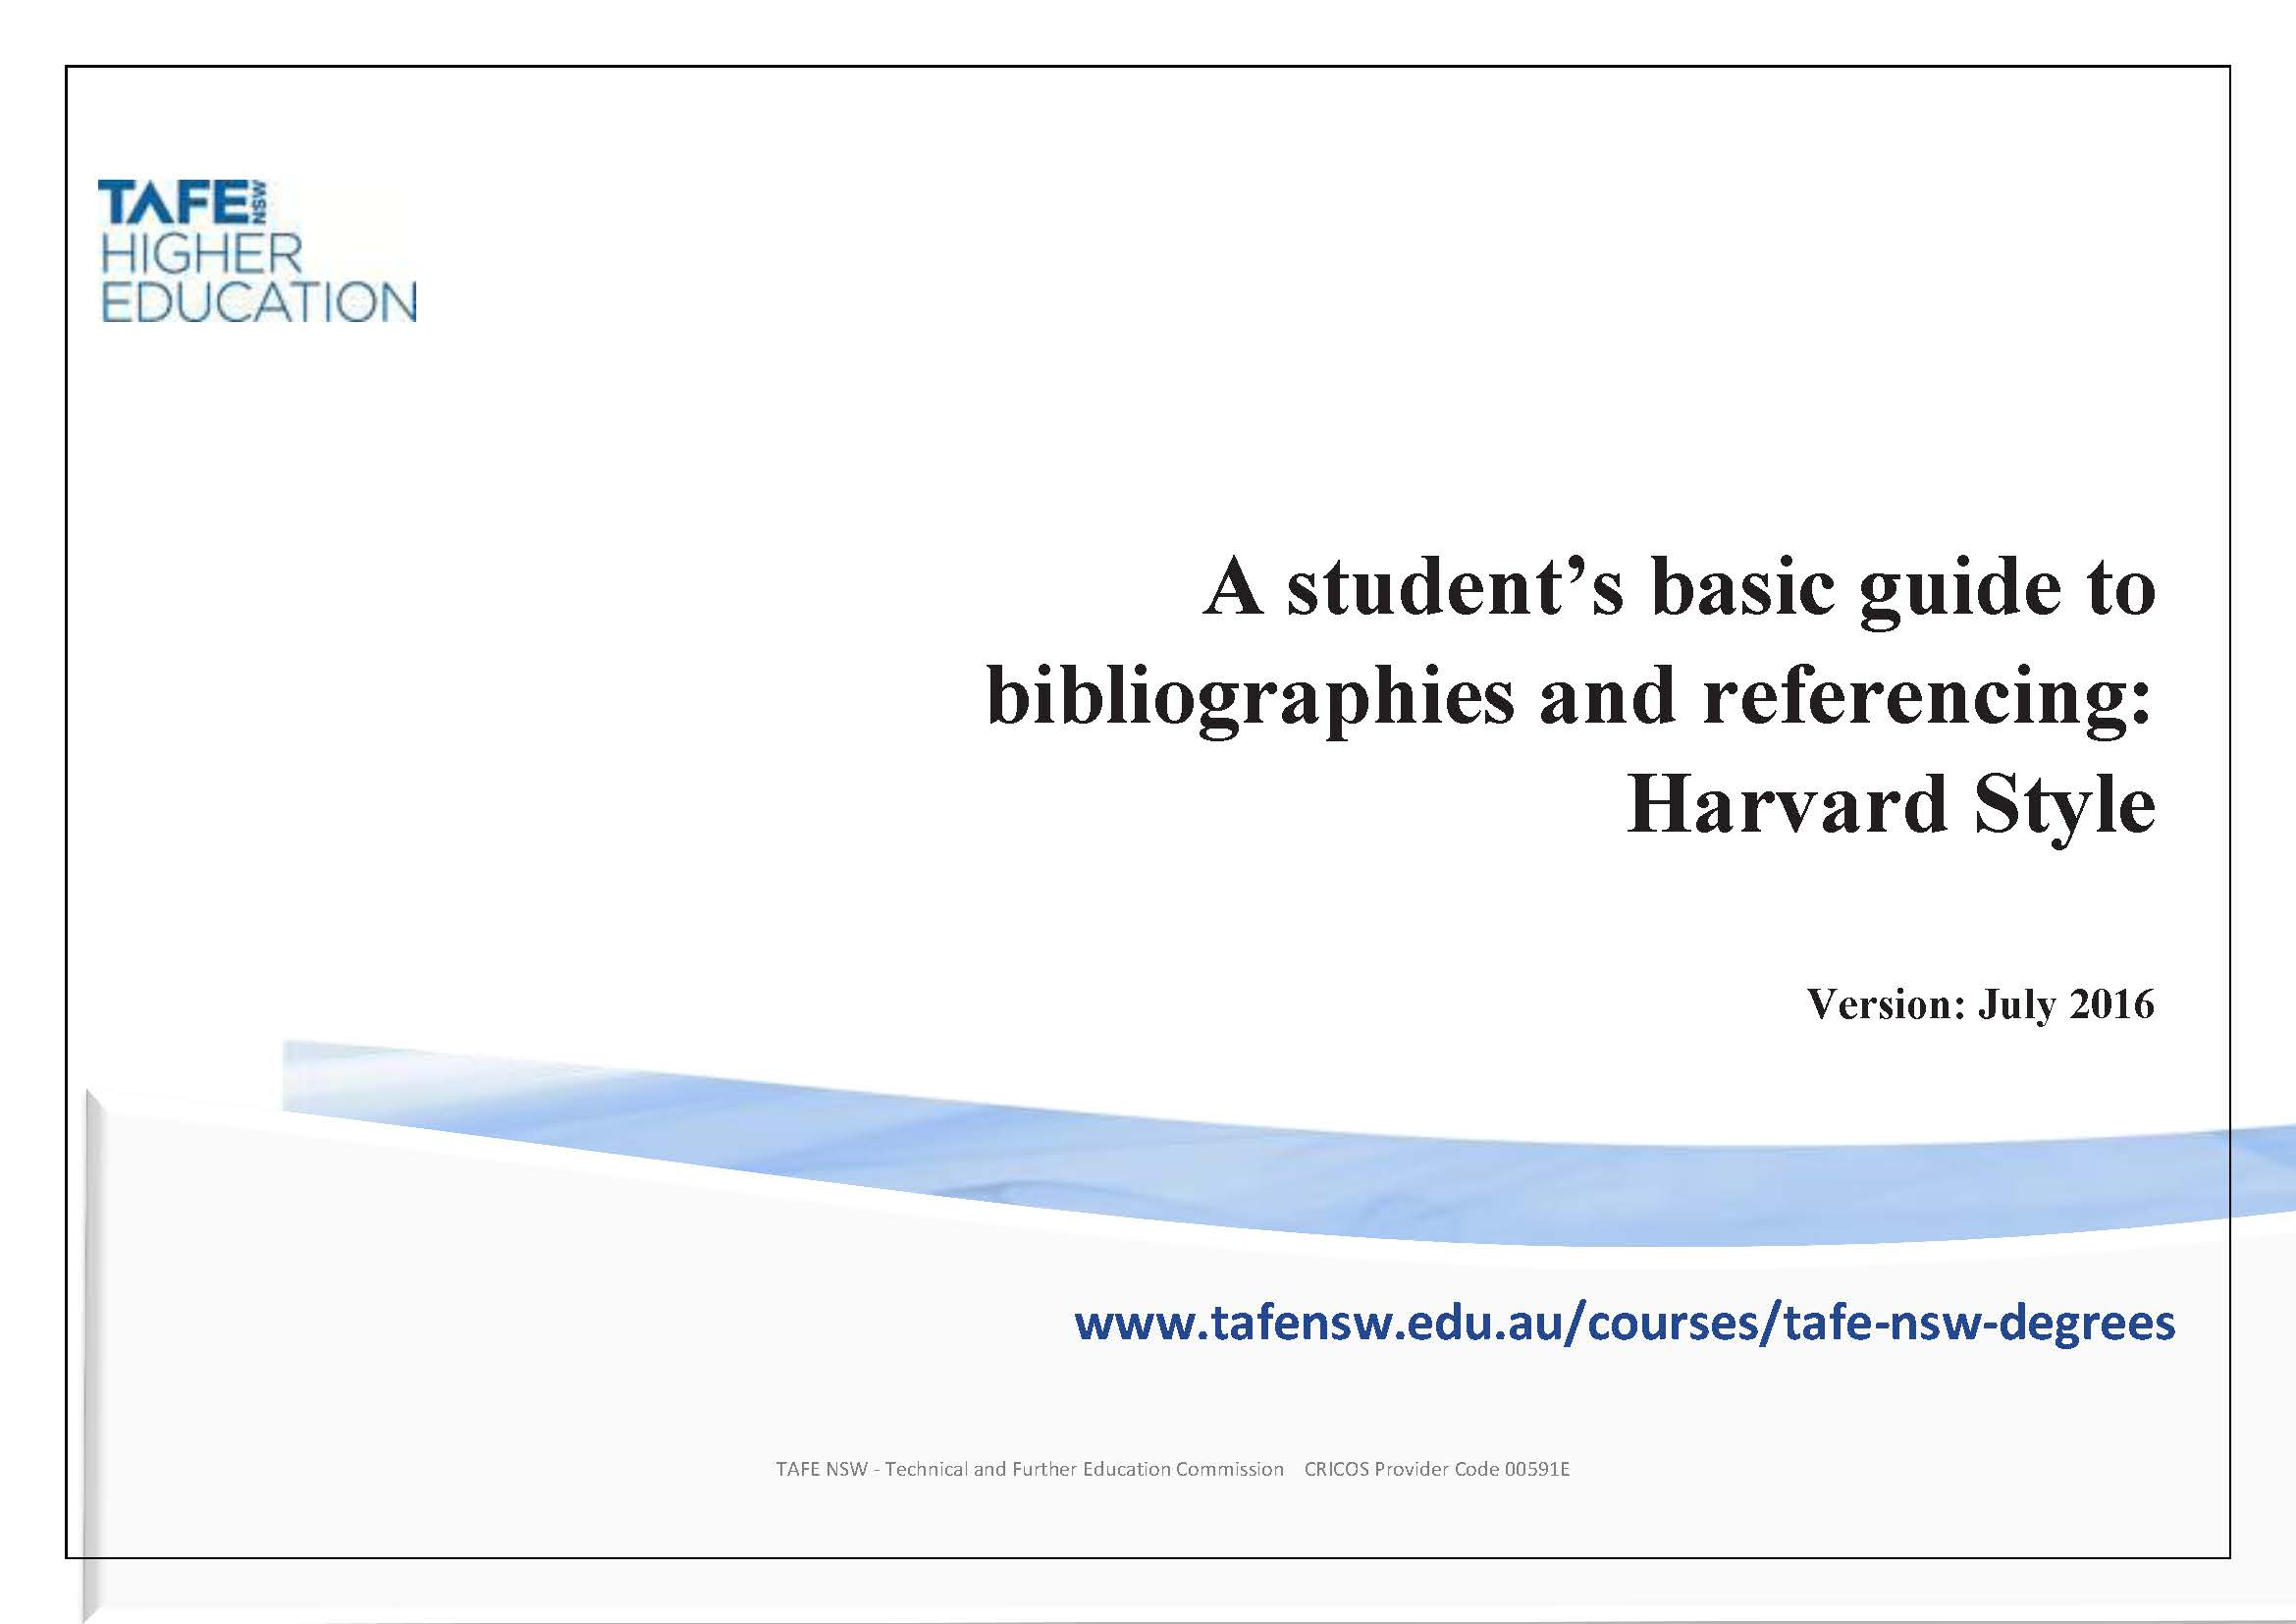 referencing research help libguides at tafe nsw northern sydney student s basic guide to bibliographies and referencing harvard style 2016